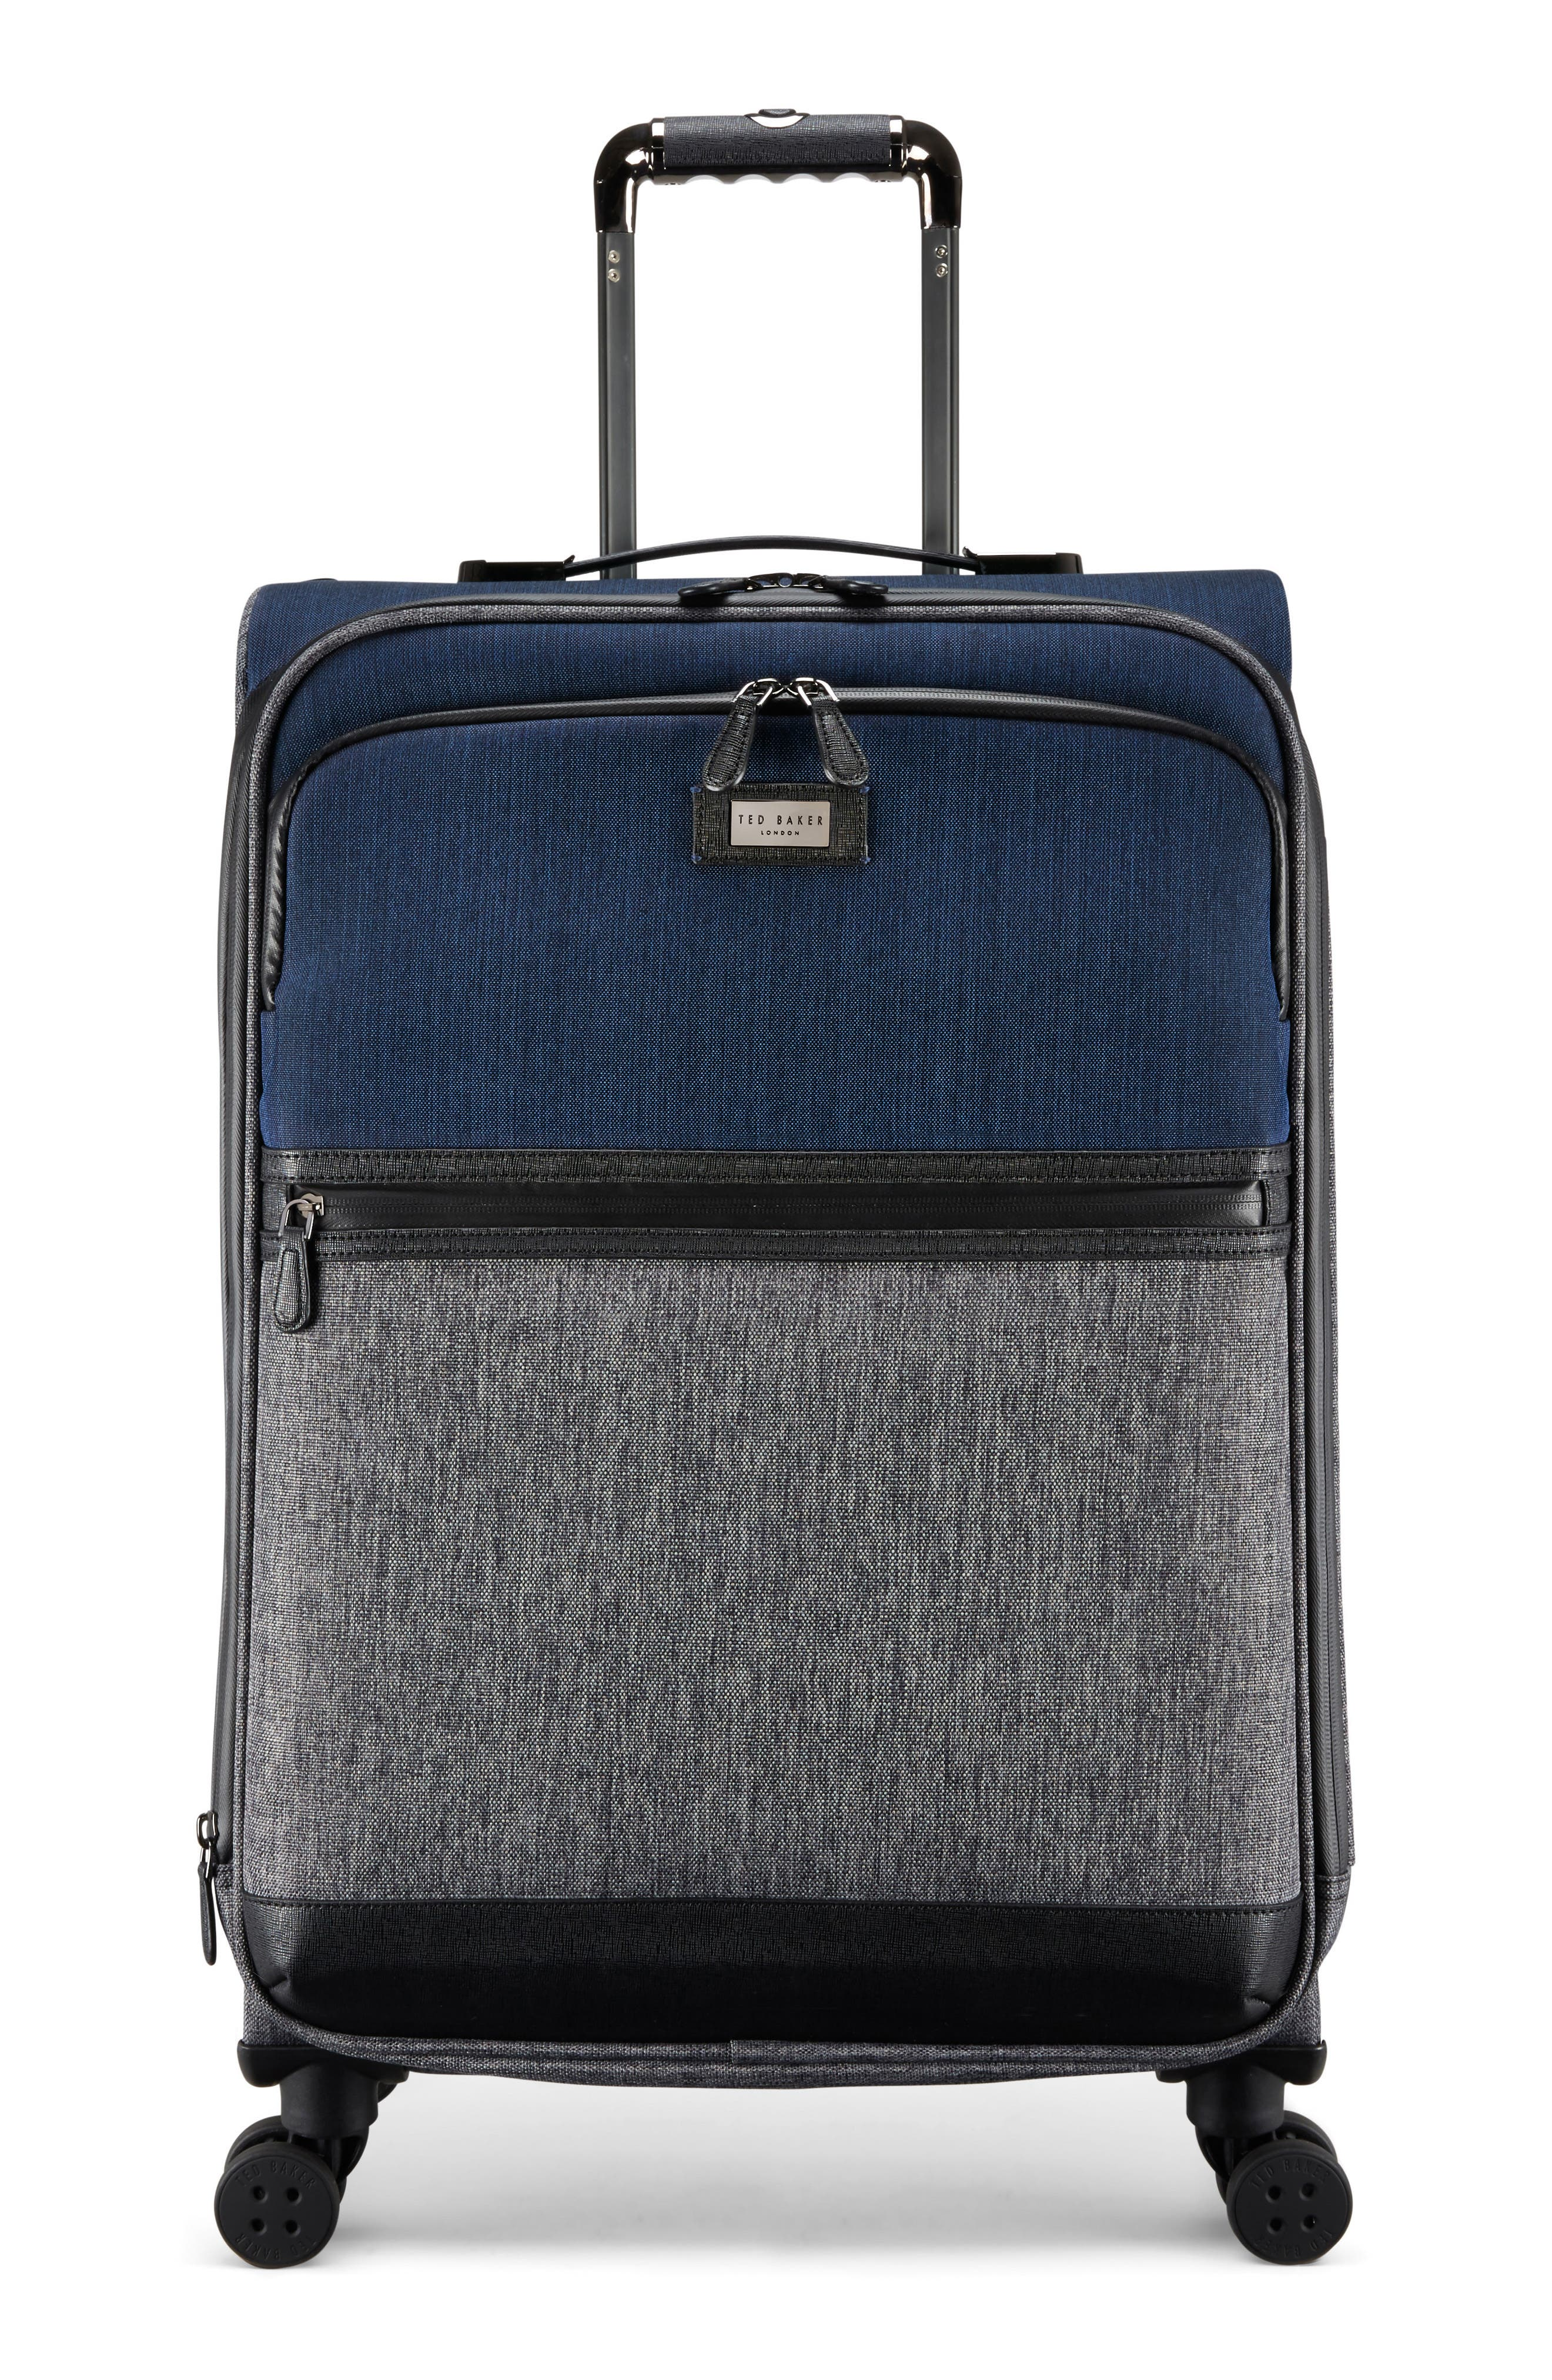 Brunswick 27-Inch Rolling Suitcase,                             Main thumbnail 1, color,                             020